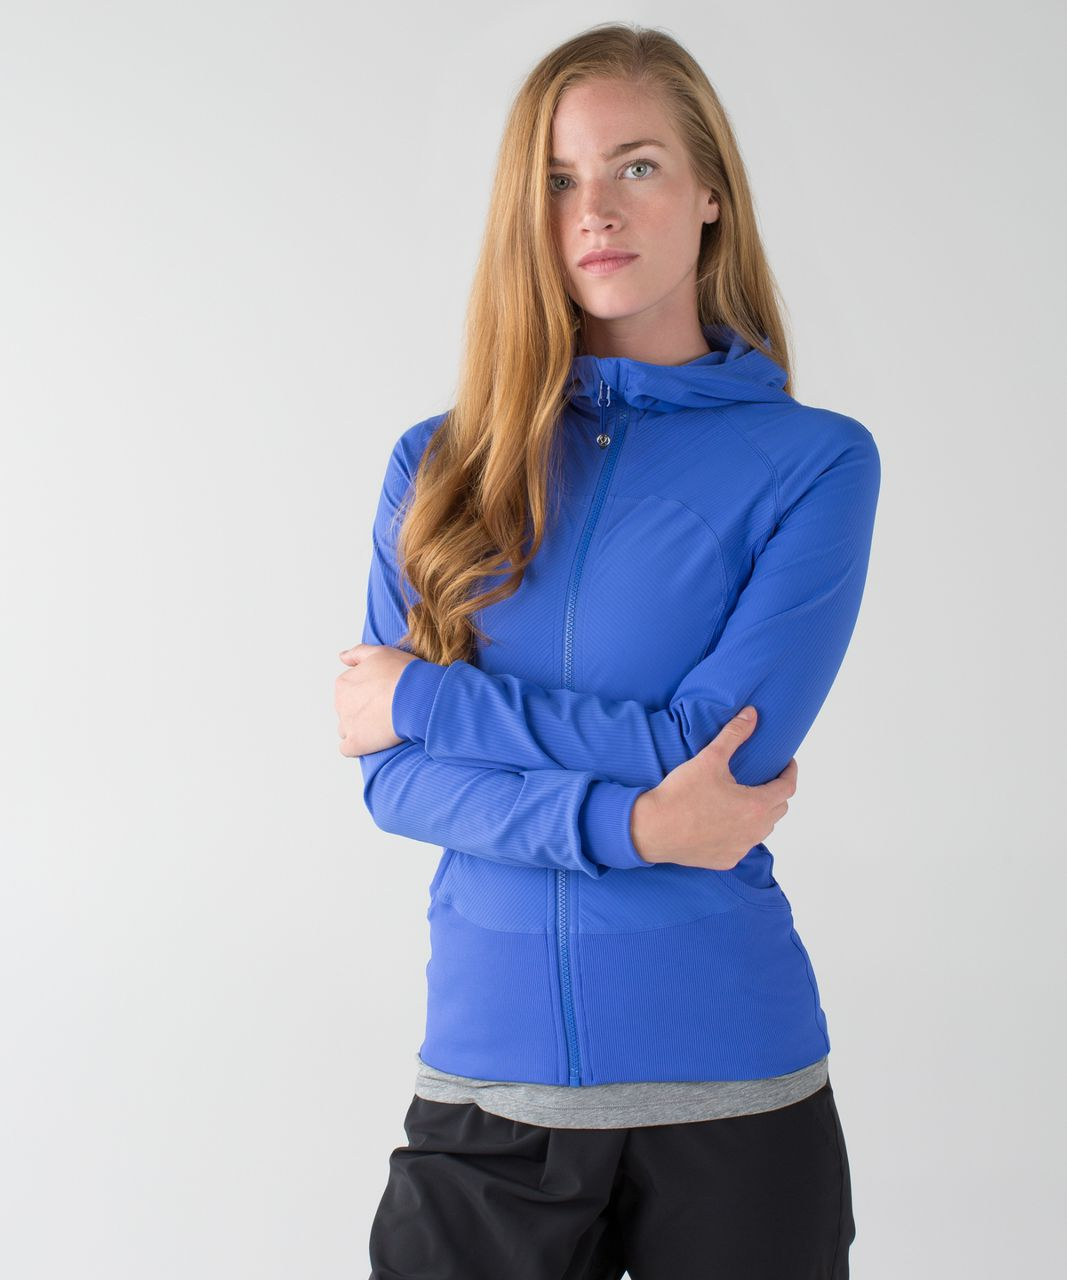 Lululemon In Flux Jacket - Sprinkler